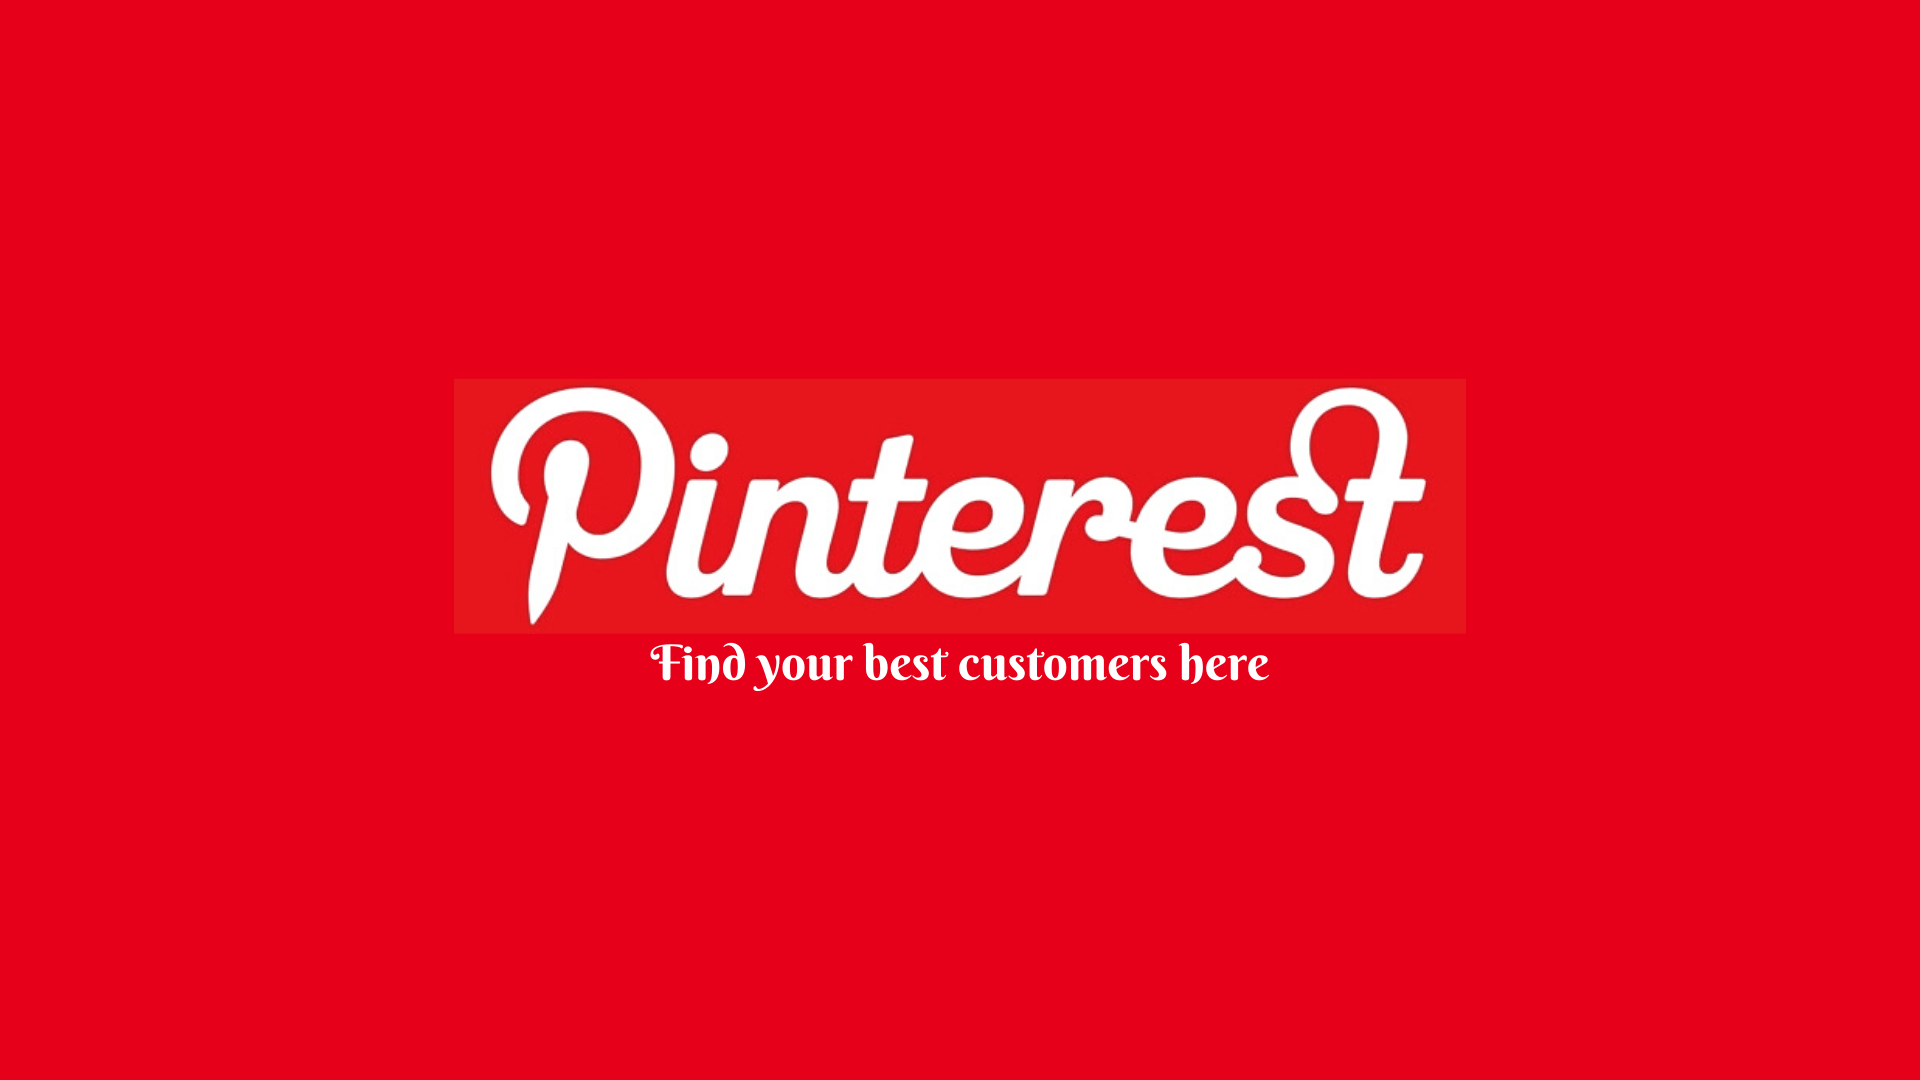 How Pinterest Works